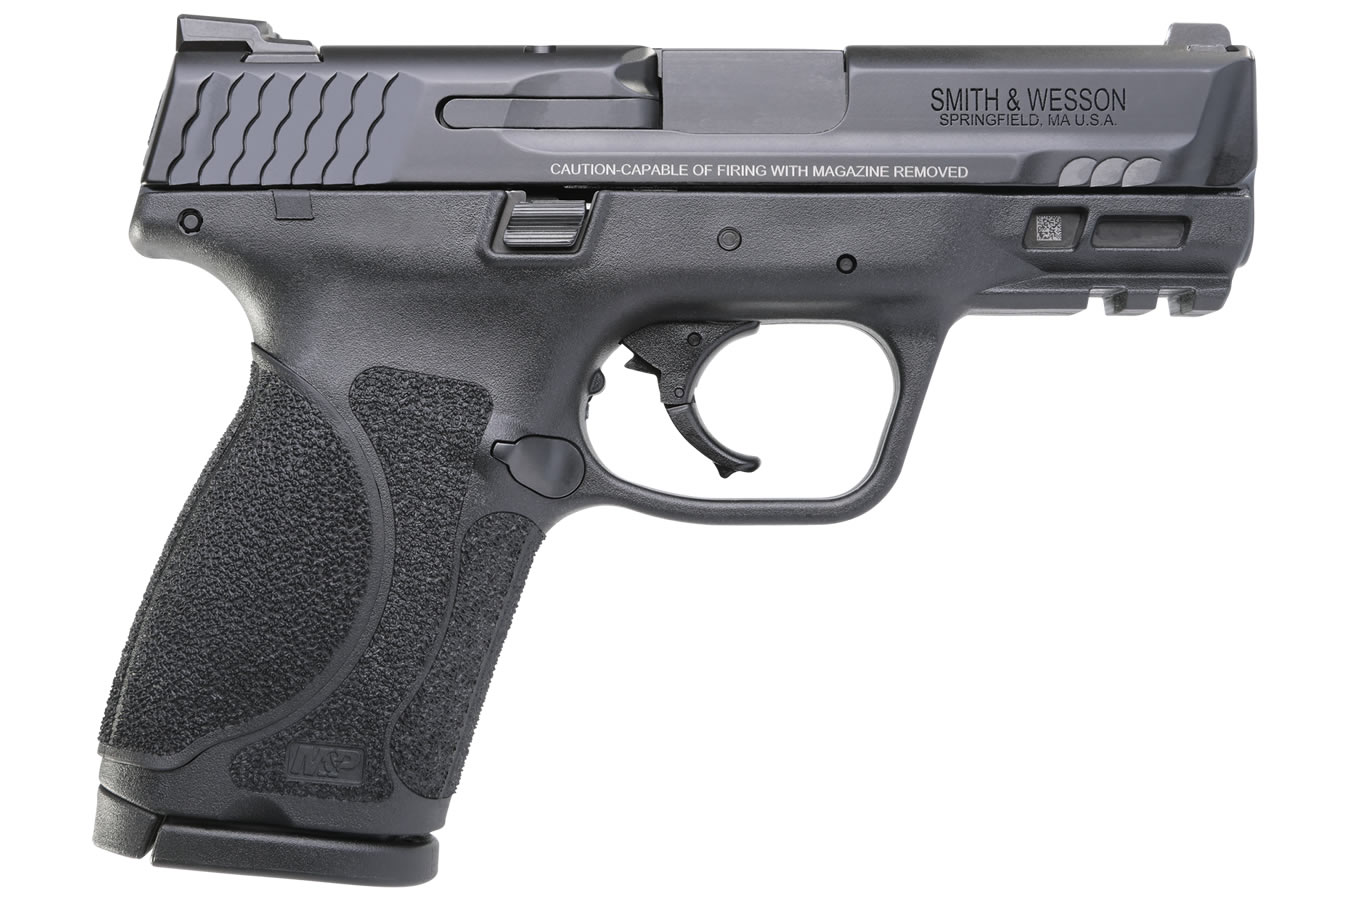 No. 7 Best Selling: SMITH AND WESSON MP9 M2.0 COMPACT 9MM W/ 3.6 INCH BARREL